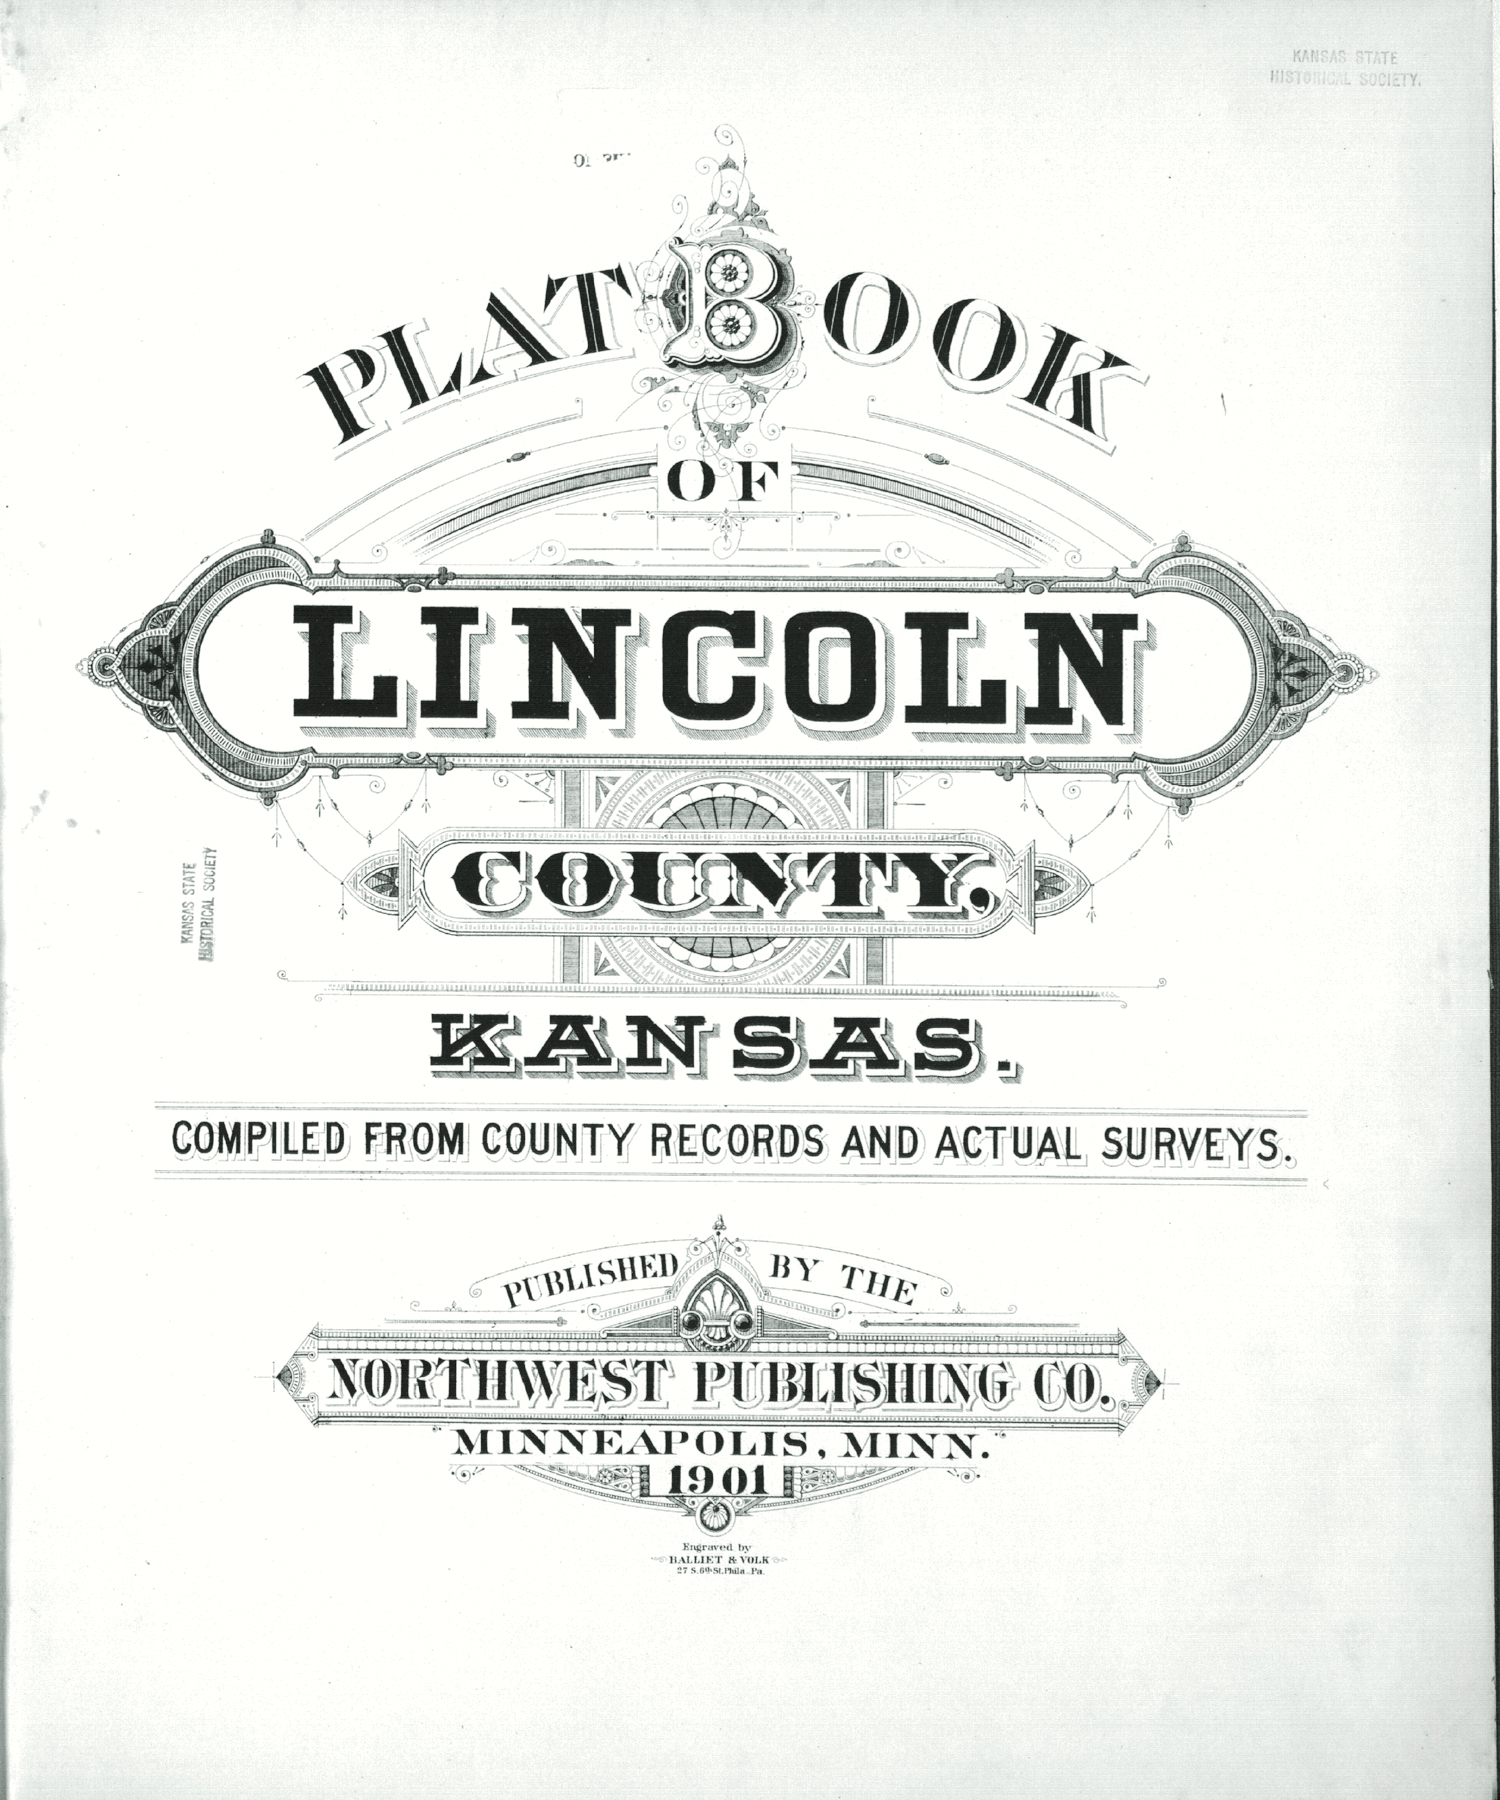 Plat book of Lincoln County, Kansas - Title Page